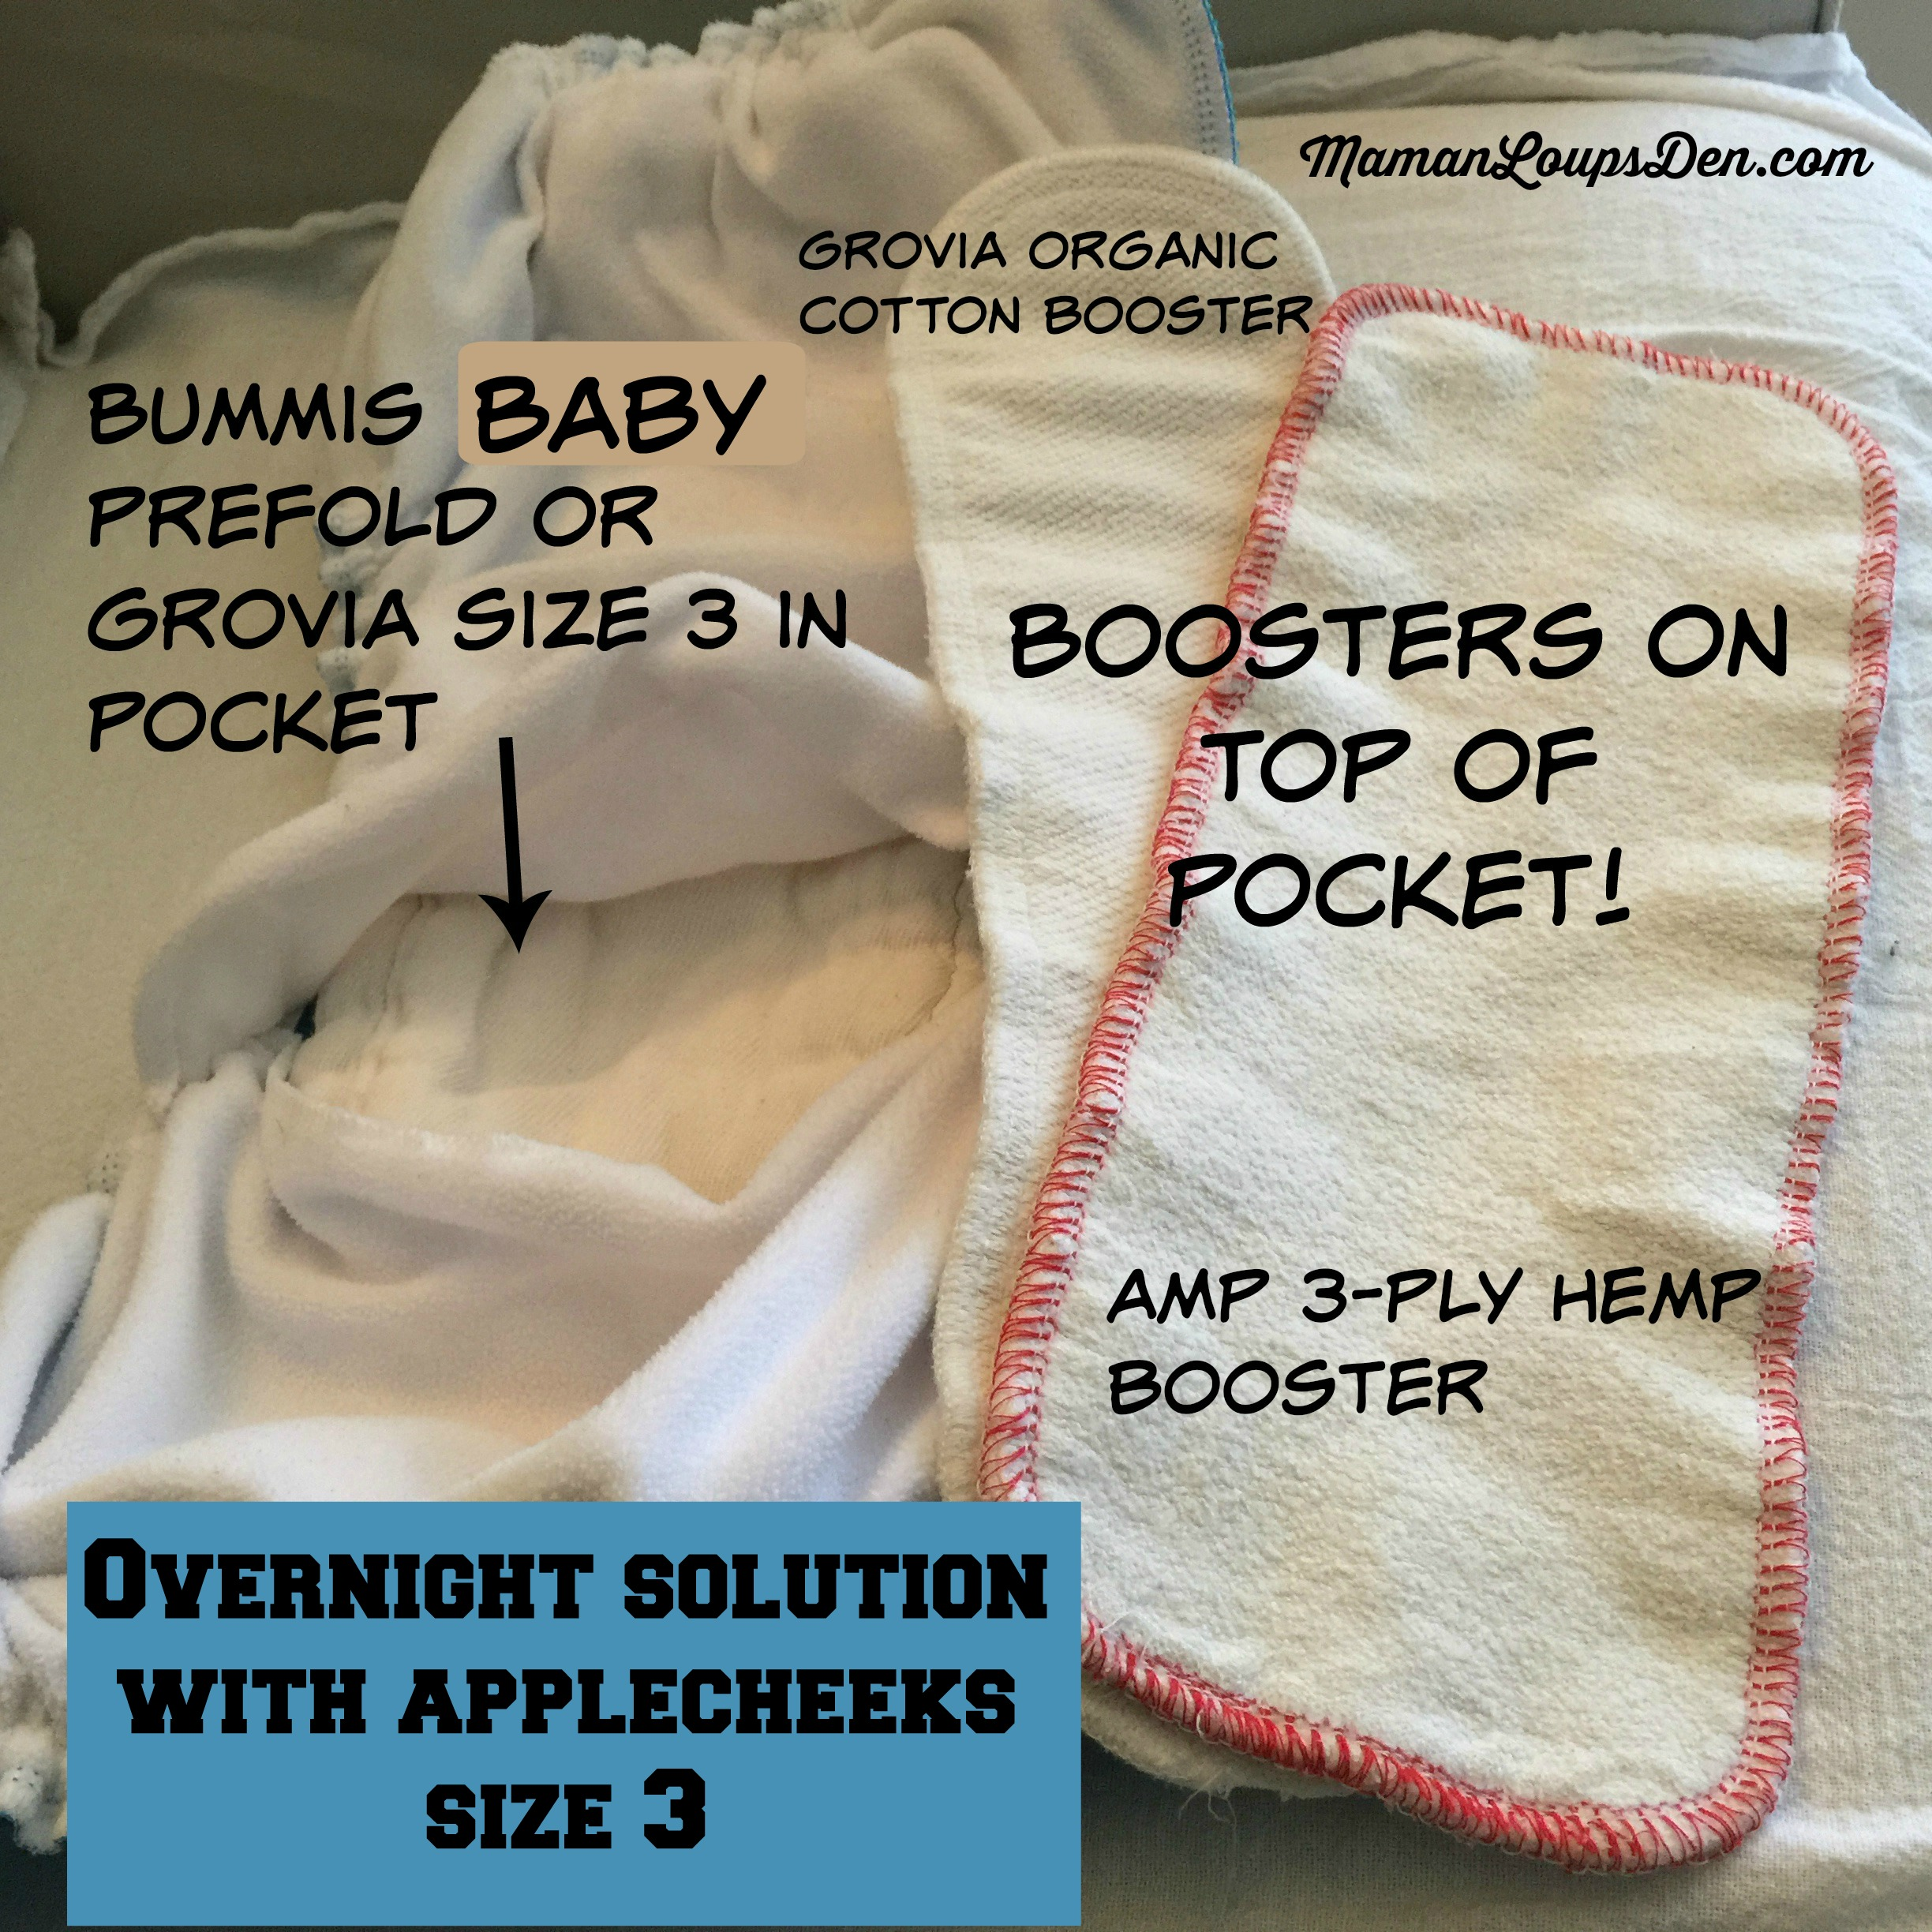 AppleCheeks Size 3 Overnight Solution